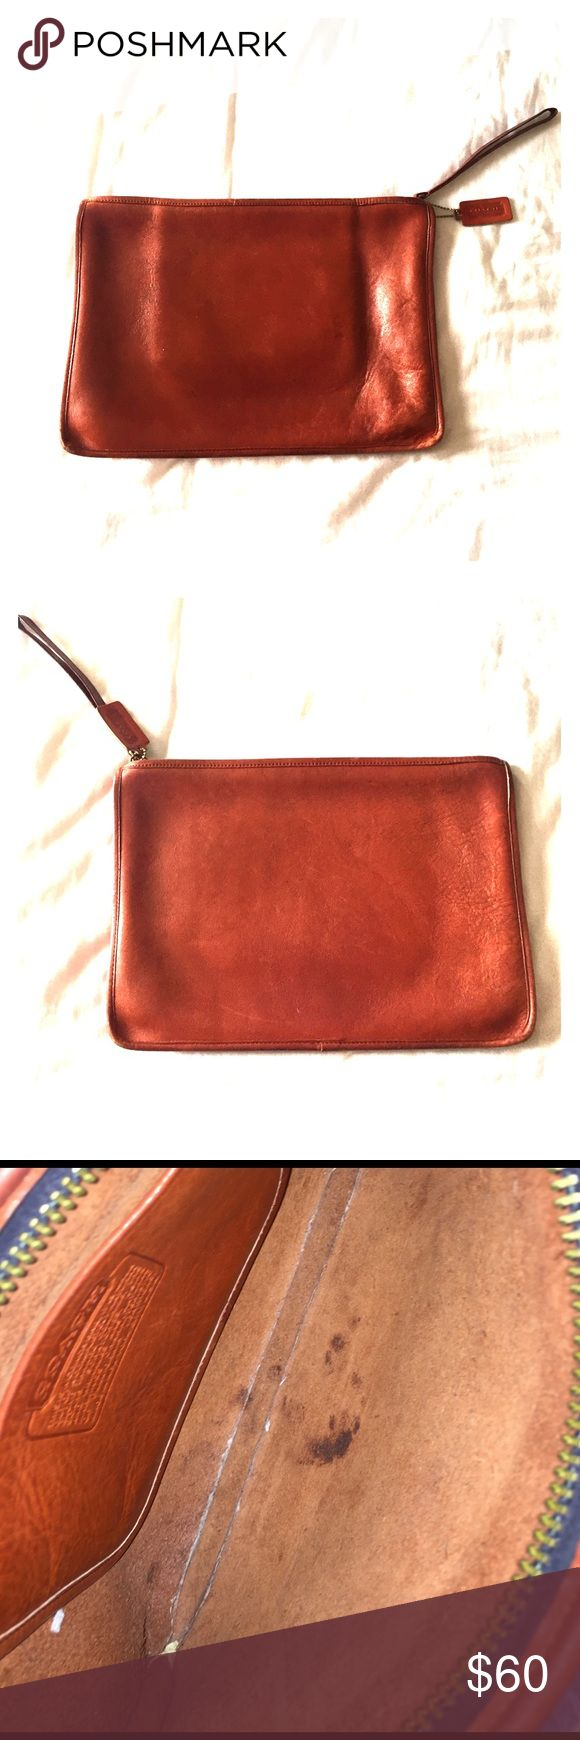 COACH brown clutch COACH leather clutch bag. Just about bigger than the size of an iPad. Slight stains on the inside, price reflected. Otherwise in great condition. Coach Bags